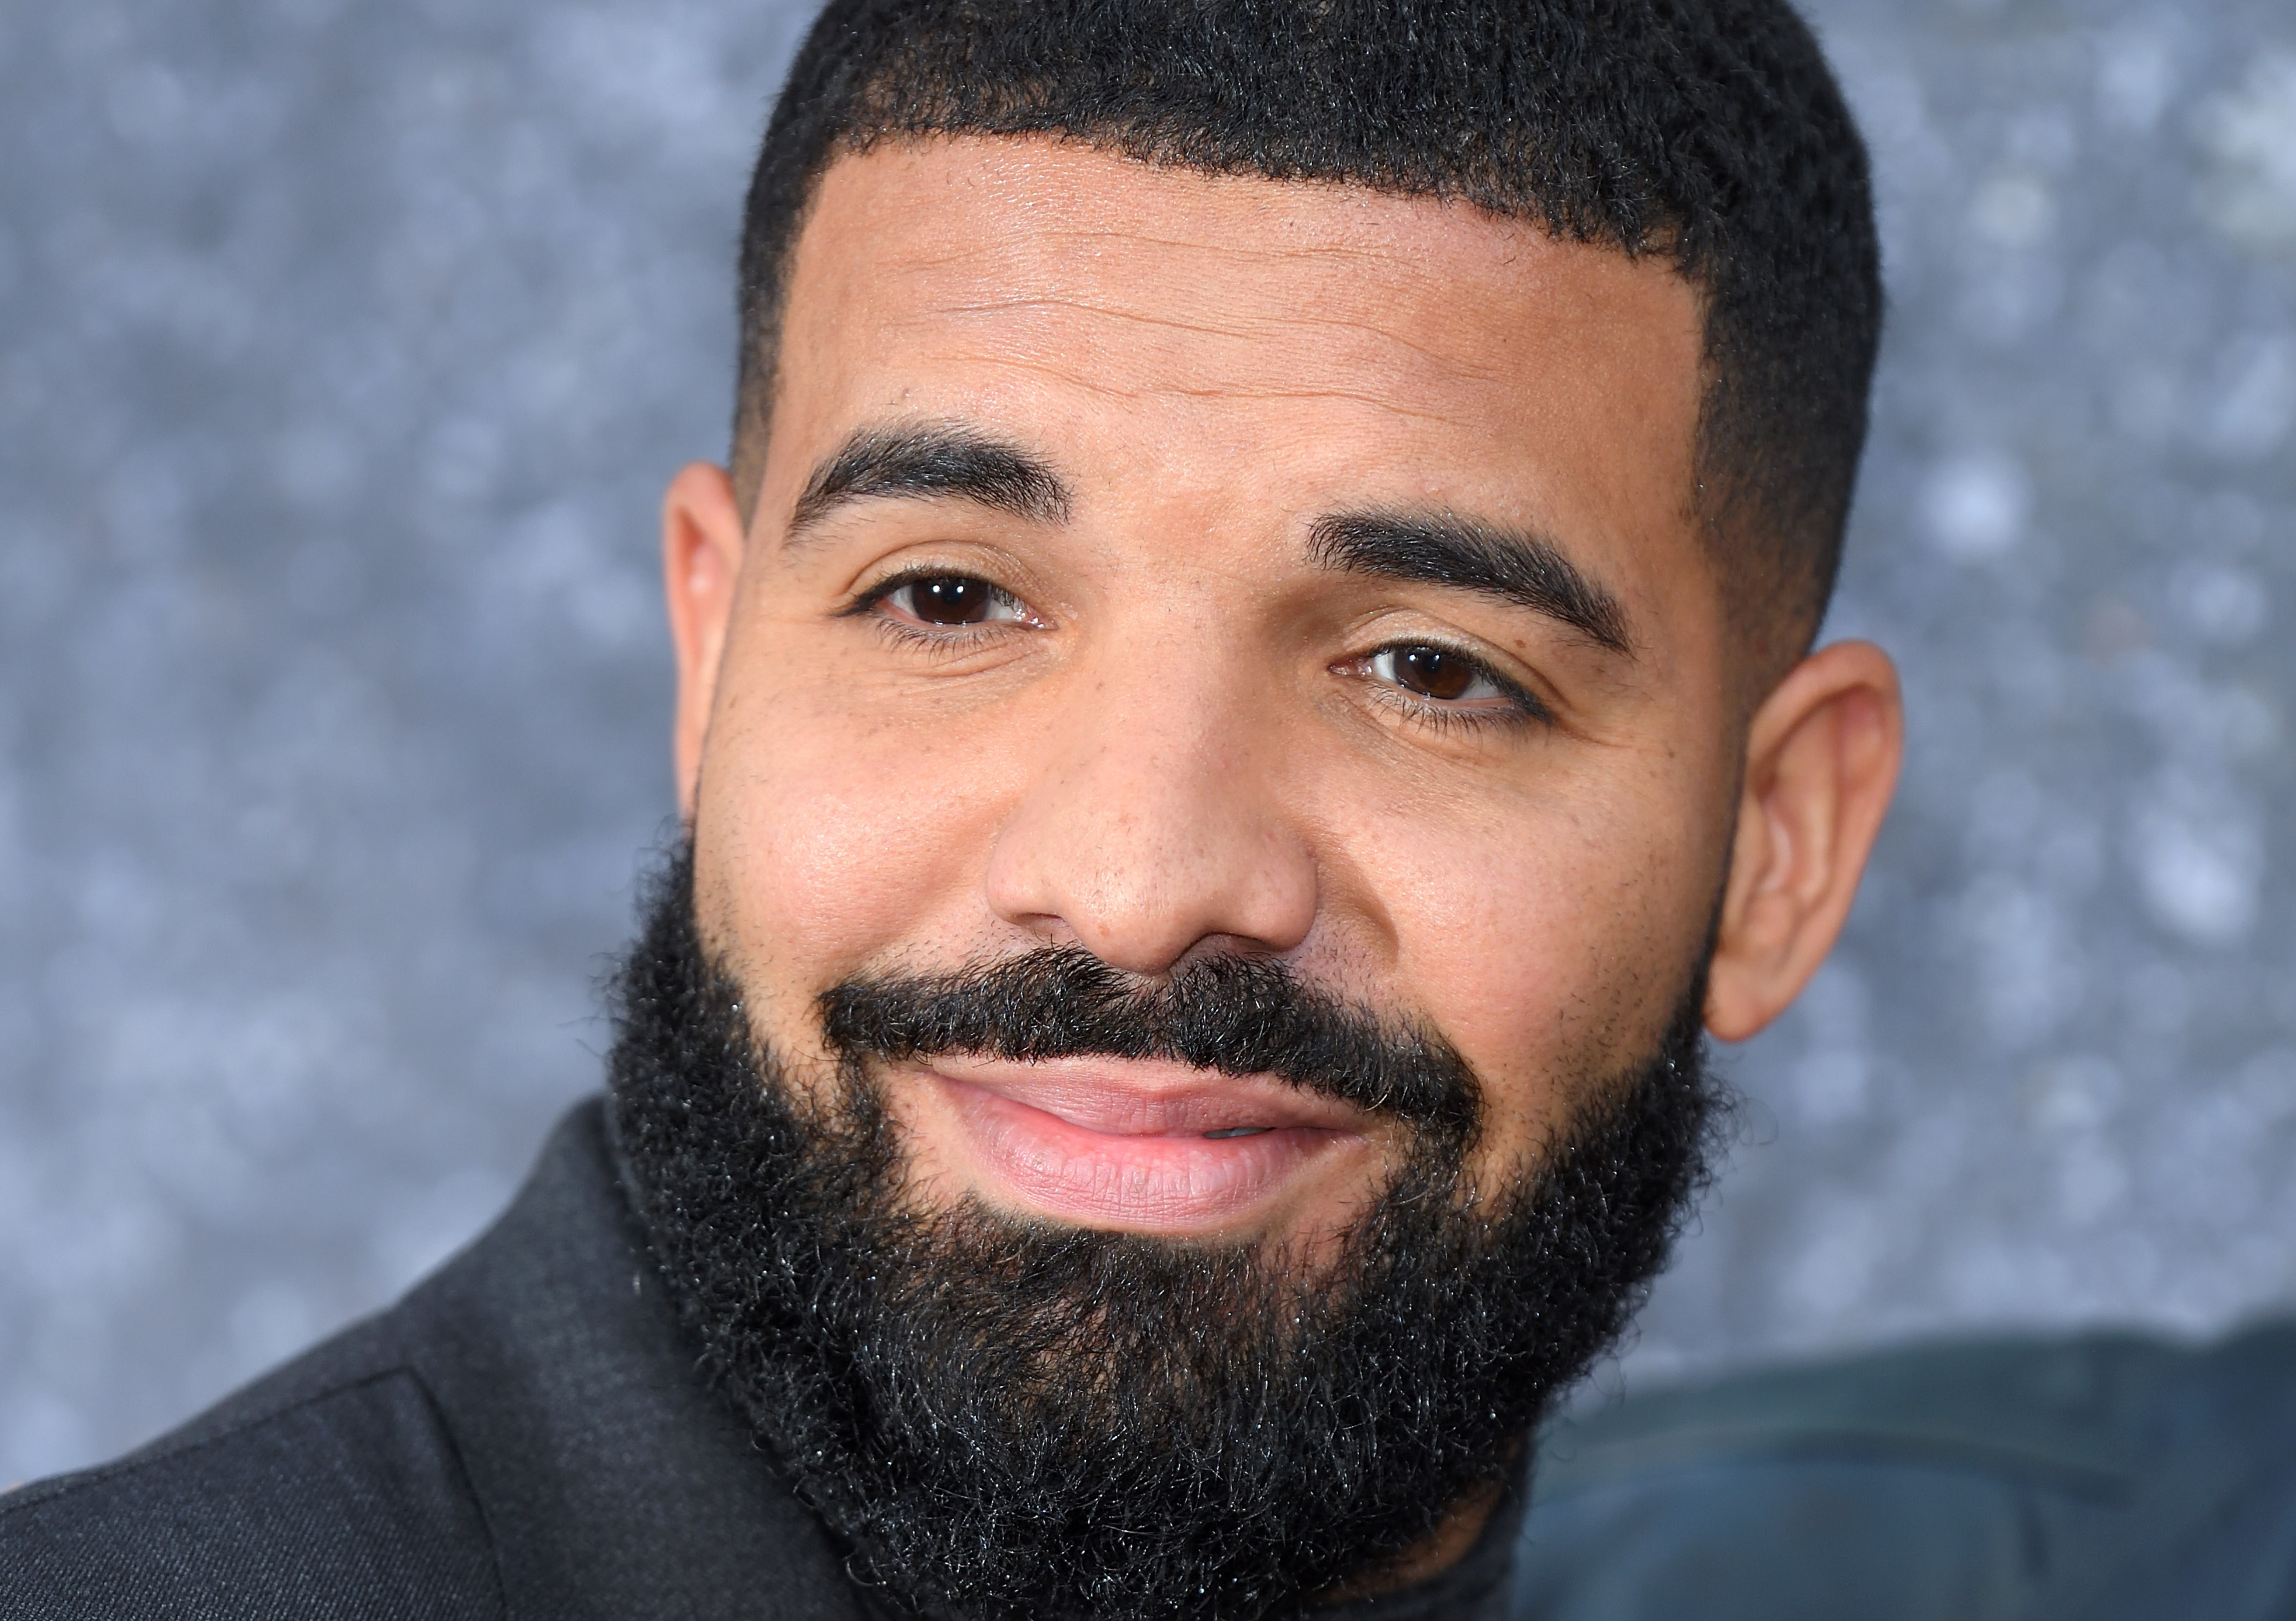 Drake threatened to quit 'Degrassi' over his character's wheelchair storyline, show writer claims